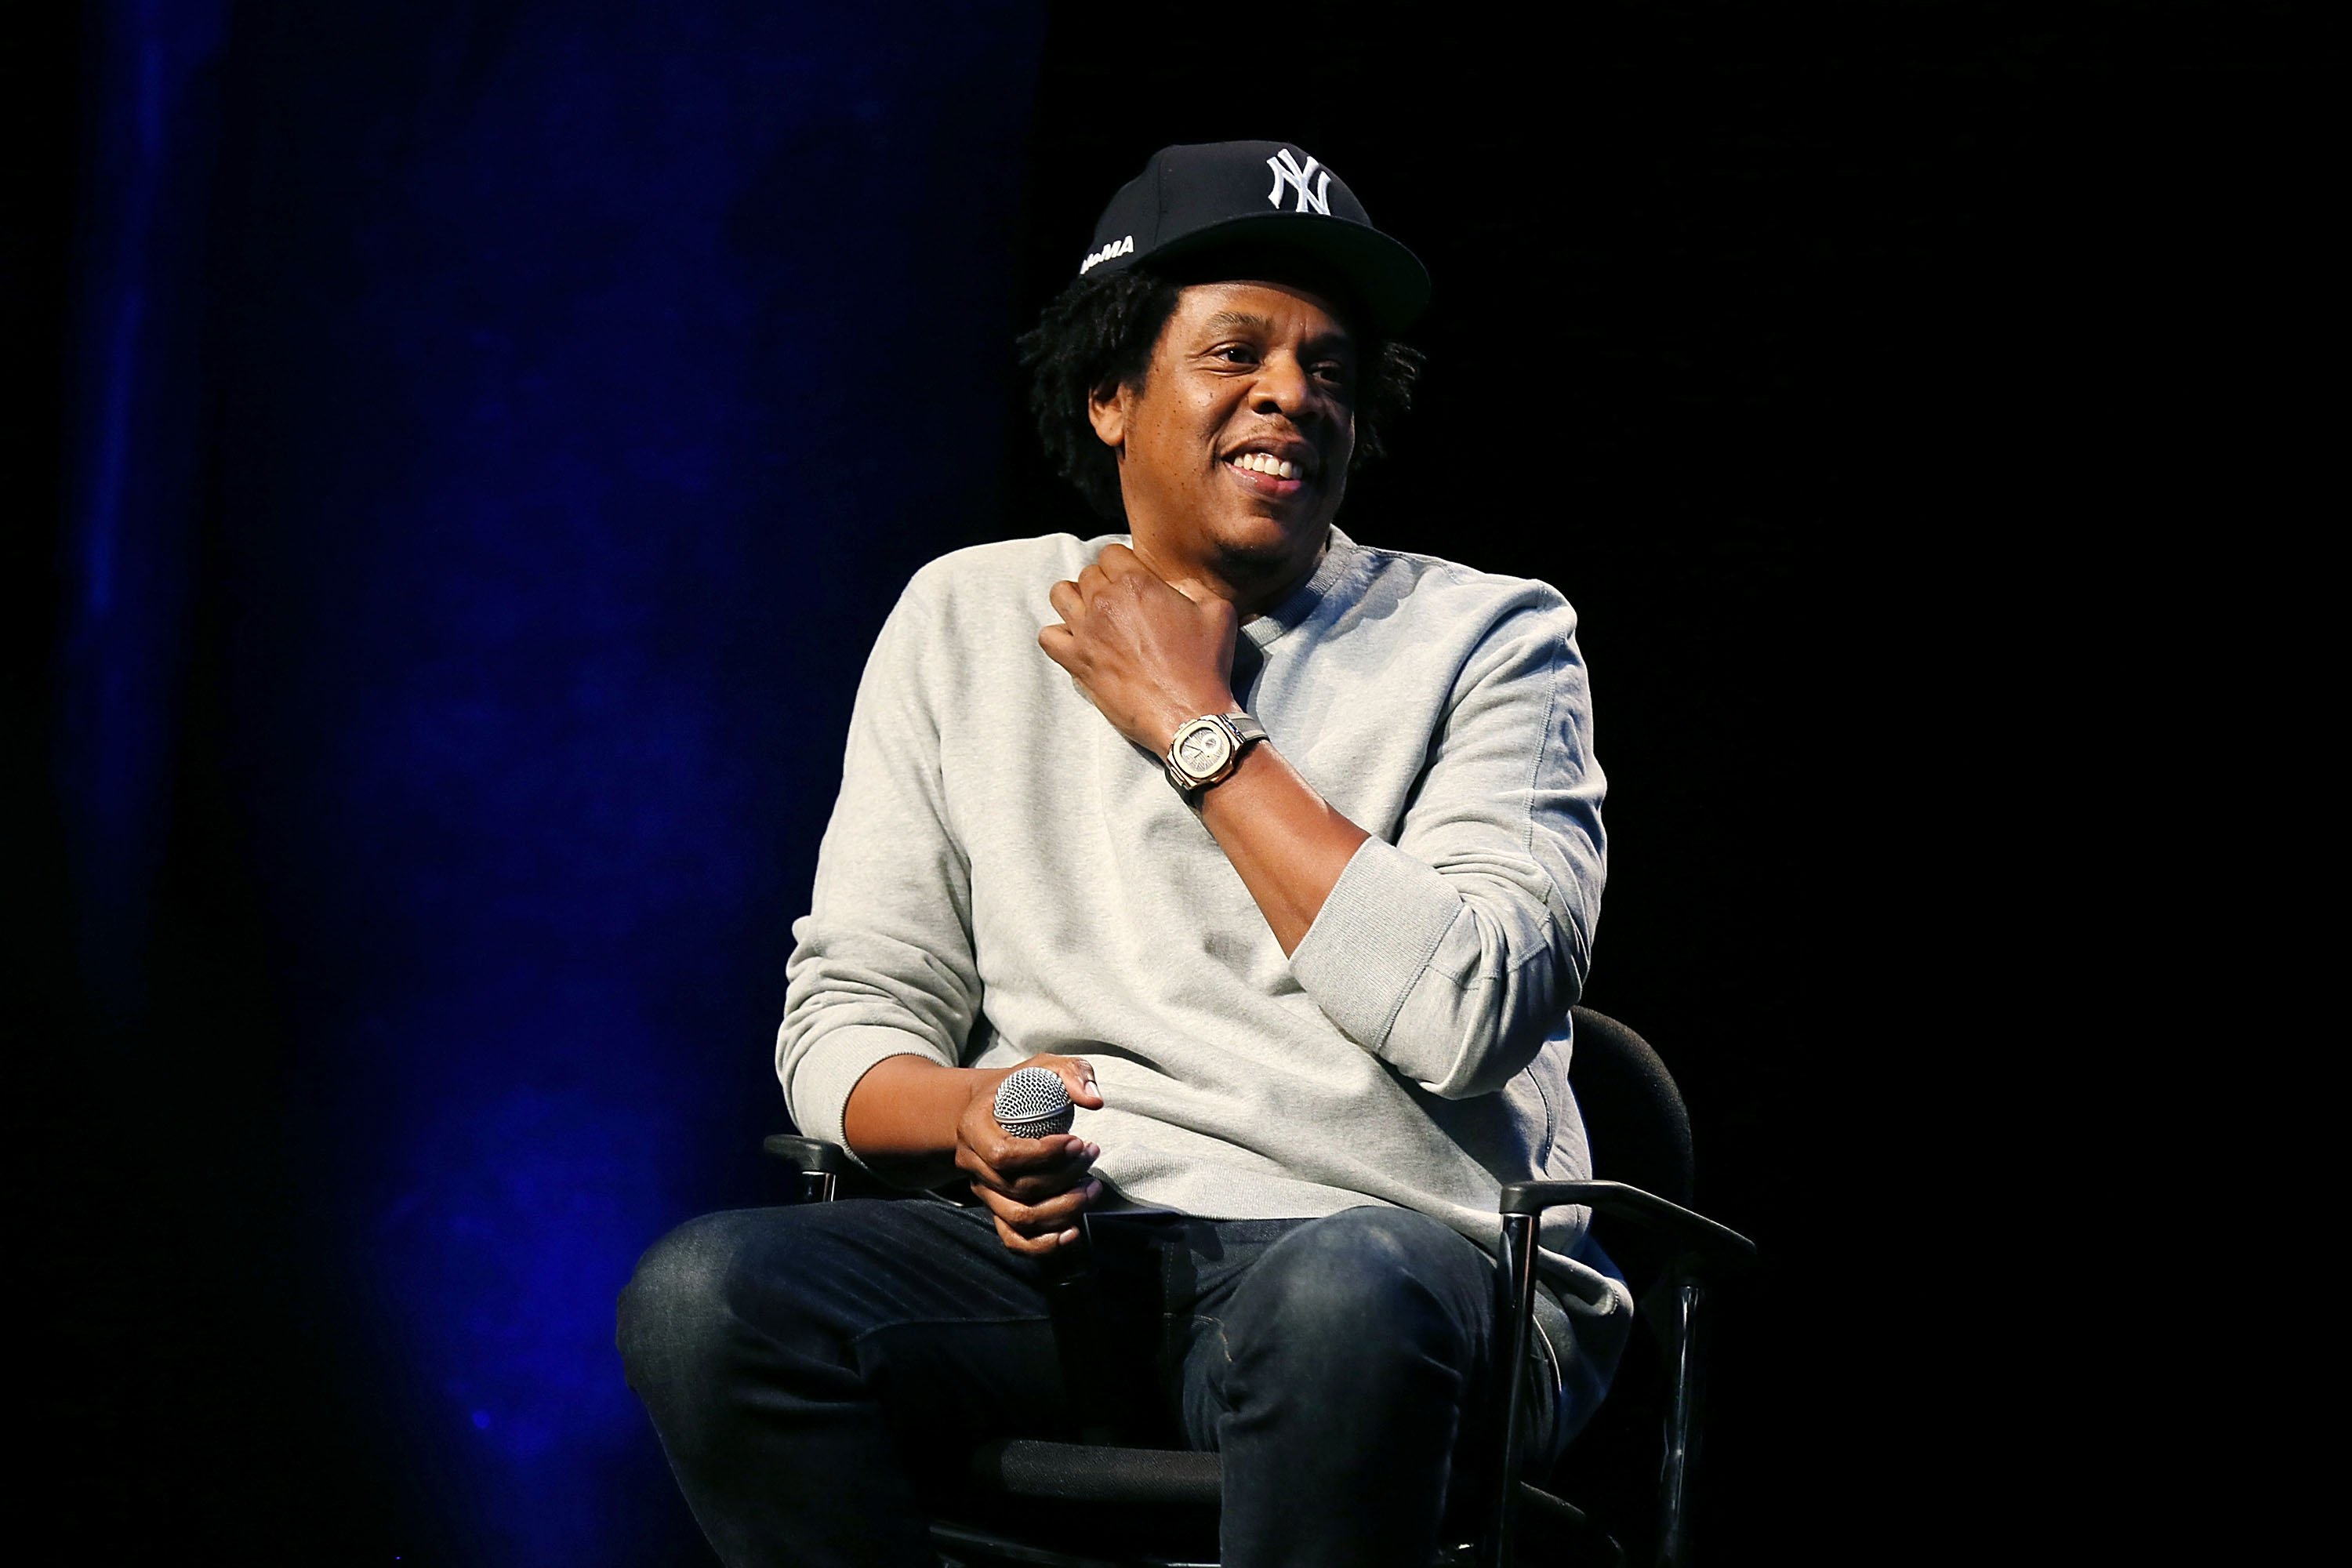 Shawn Jay-Z Carter attends Criminal Justice Reform Organization Launch in New York City on January 23, 2019 | Photo: Getty Images